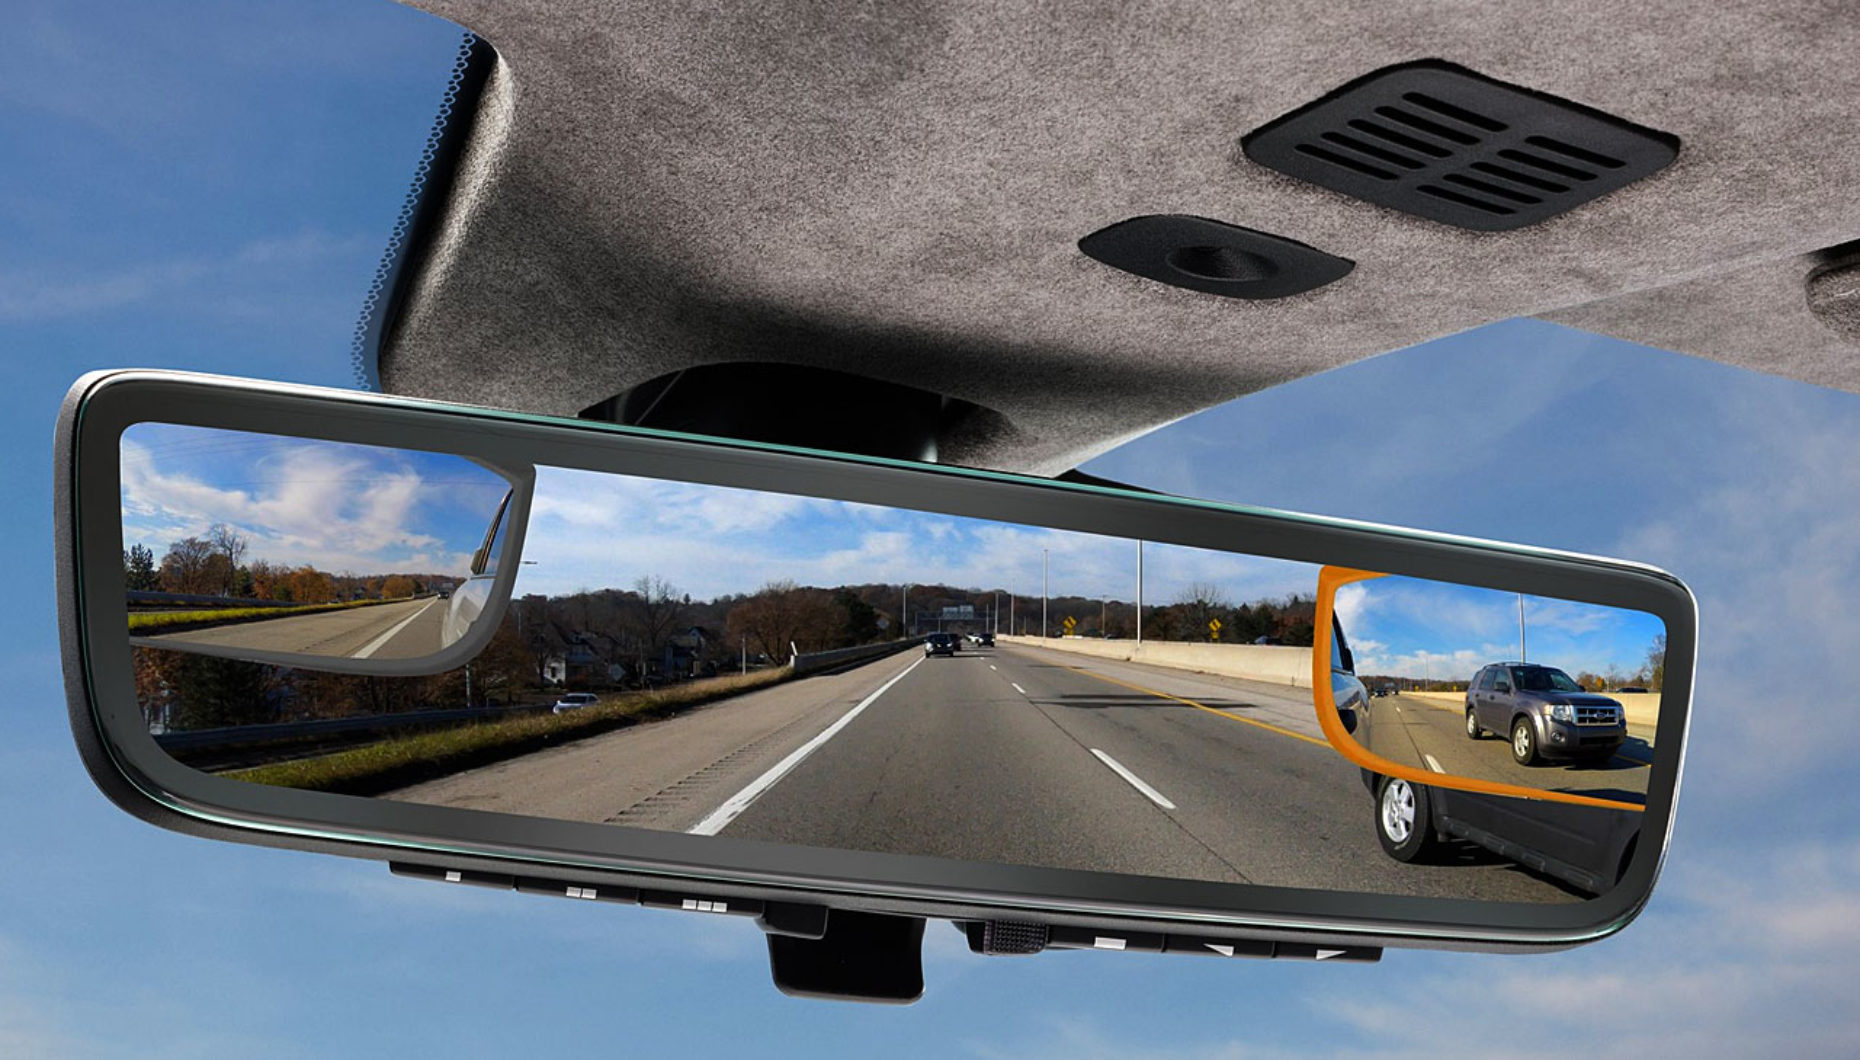 Aston Martin and Gentex Showcase Tri-camera Rearview Mirror system at CES